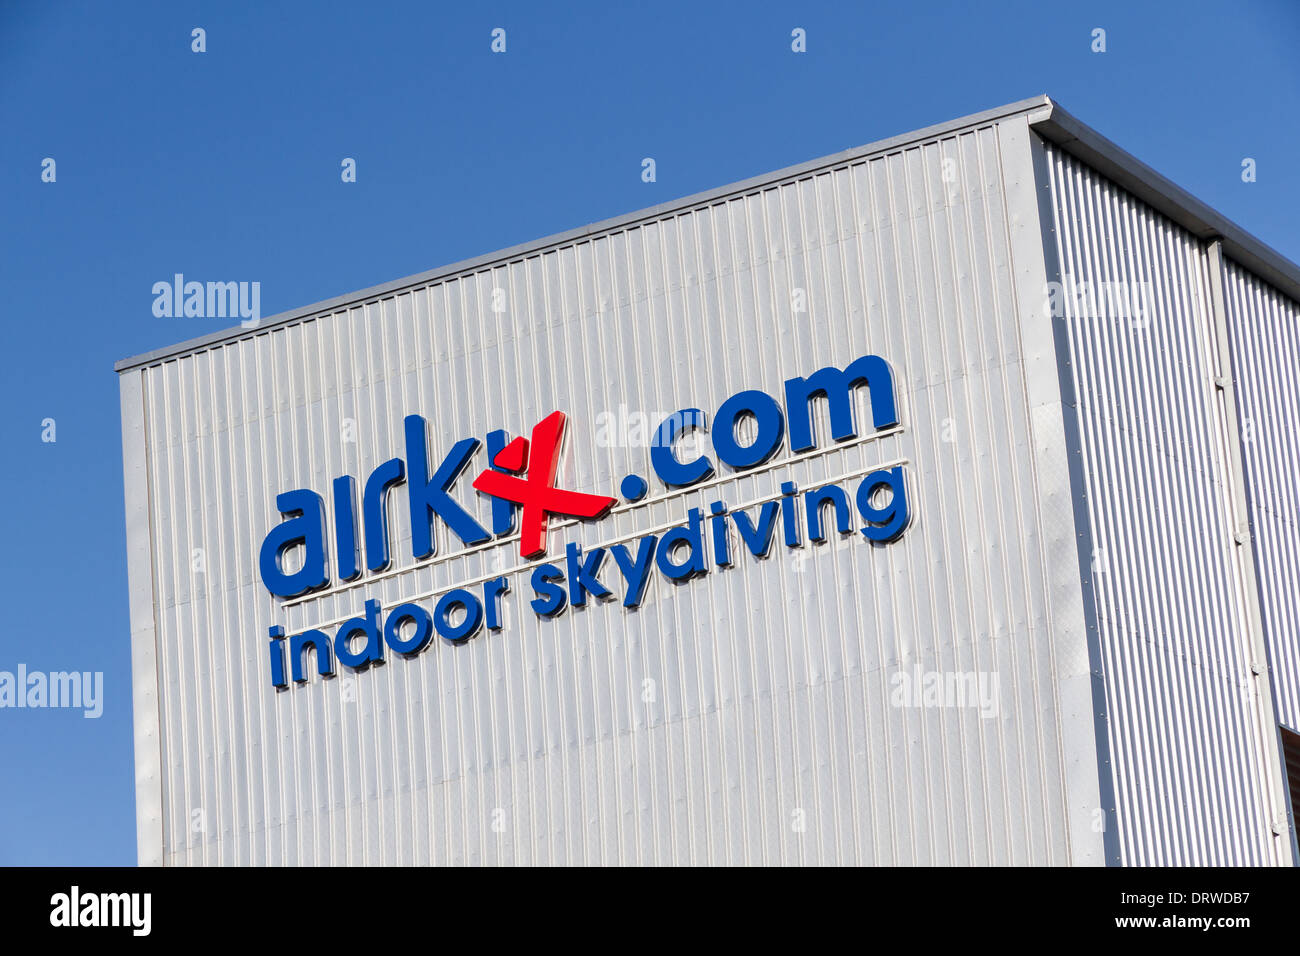 Airkix Inddor Skydiving centre in Trafford, Manchester - Stock Image